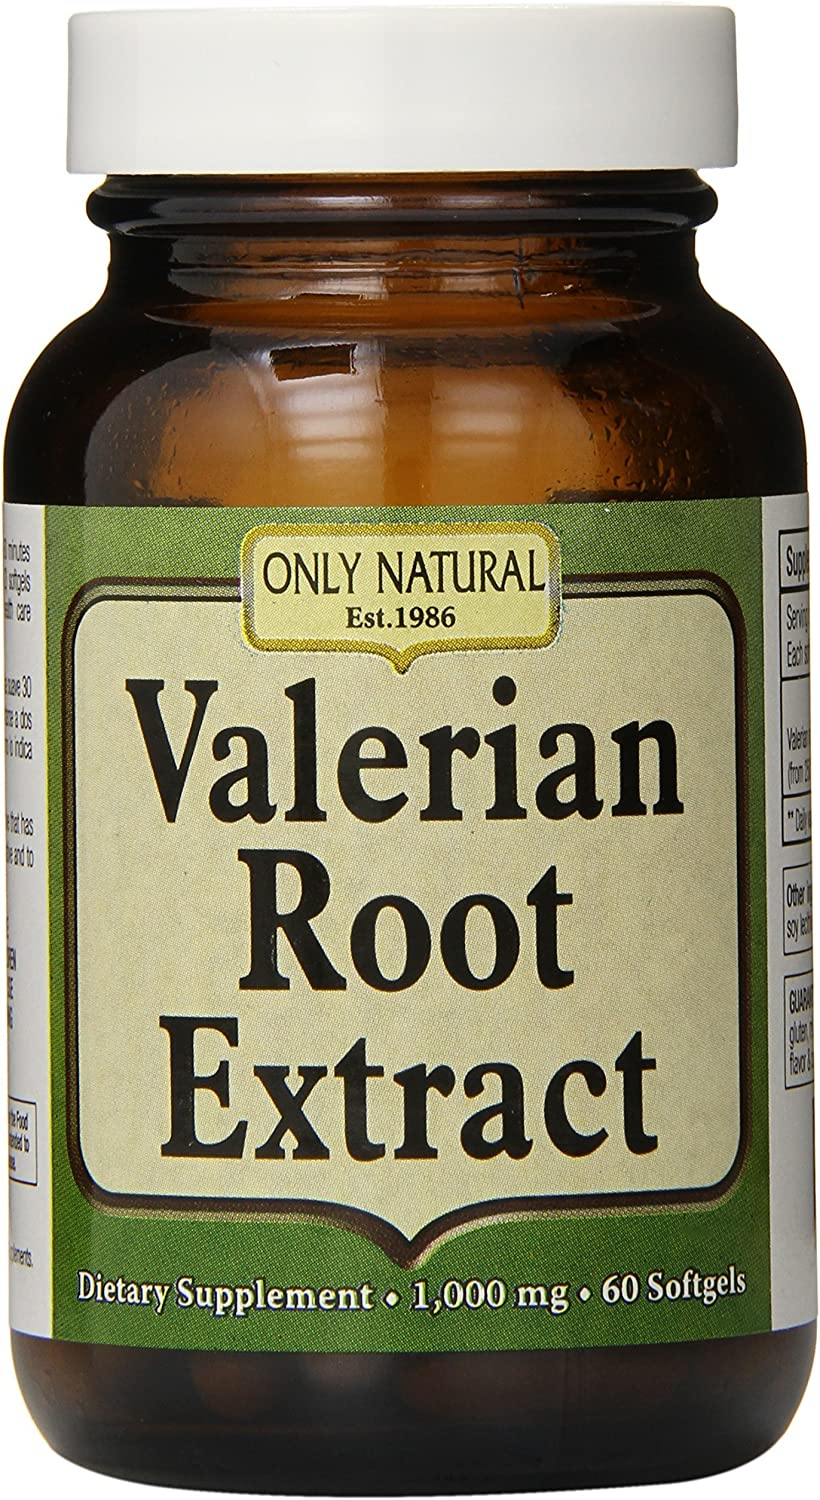 Austin Mall Only Natural Valerian Root Softgels 1 Clearance SALE Limited time mg Count 60 000